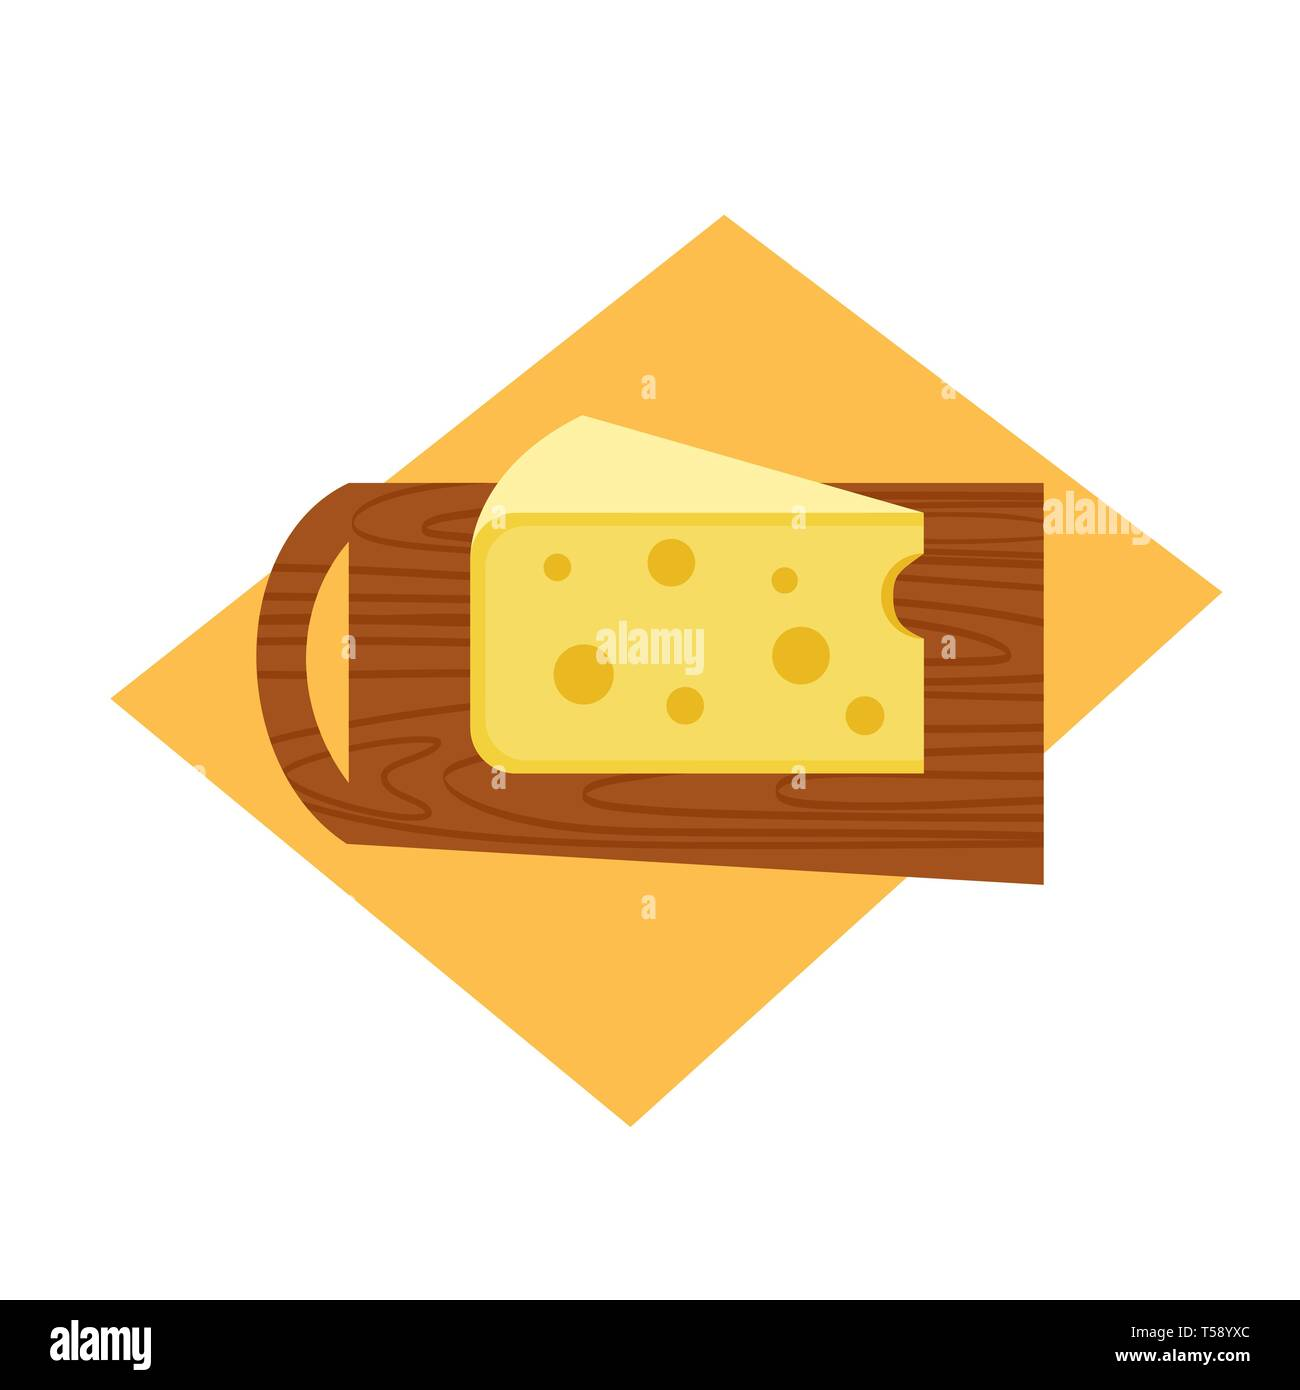 Mouse Carrying Cheese Cartoon Clipart Vector - FriendlyStock | Cartoon clip  art, Mouse drawing, Mouse illustration